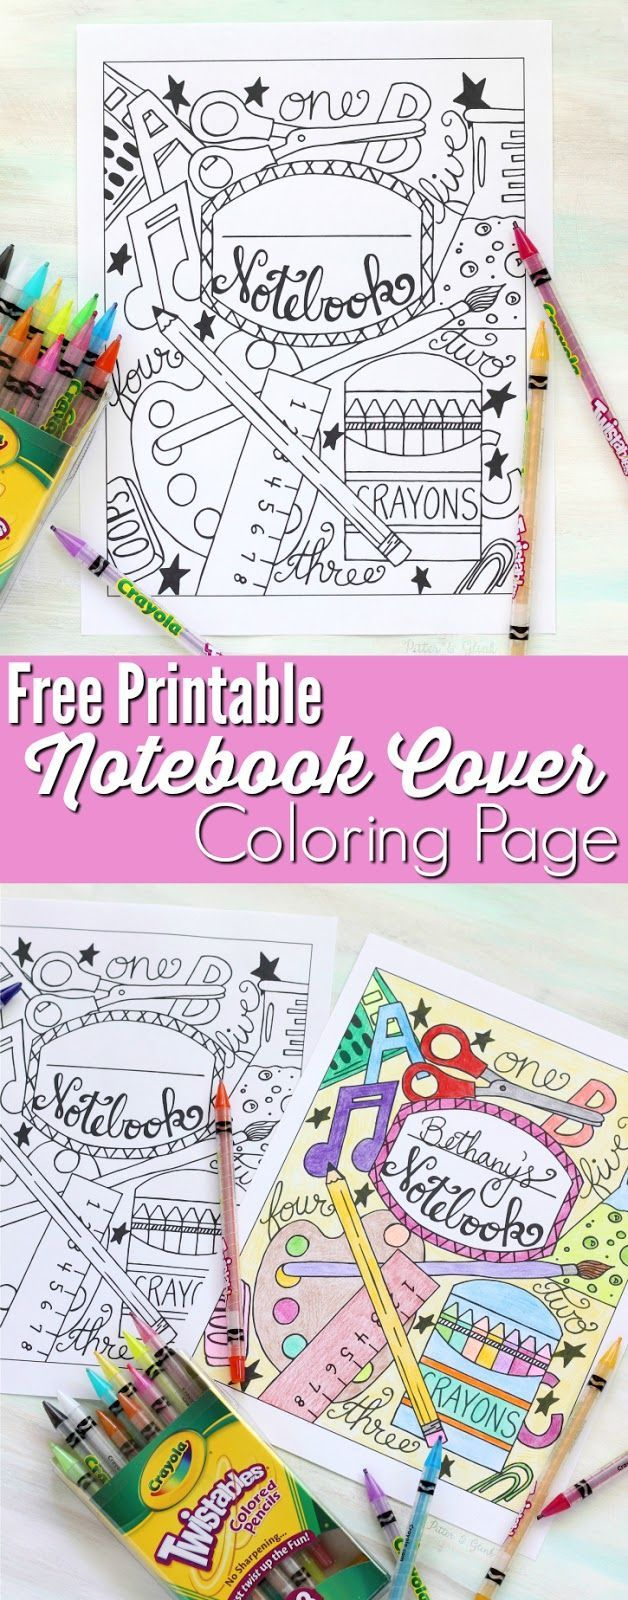 Science Book Cover Printable : The best science notebook cover ideas on pinterest